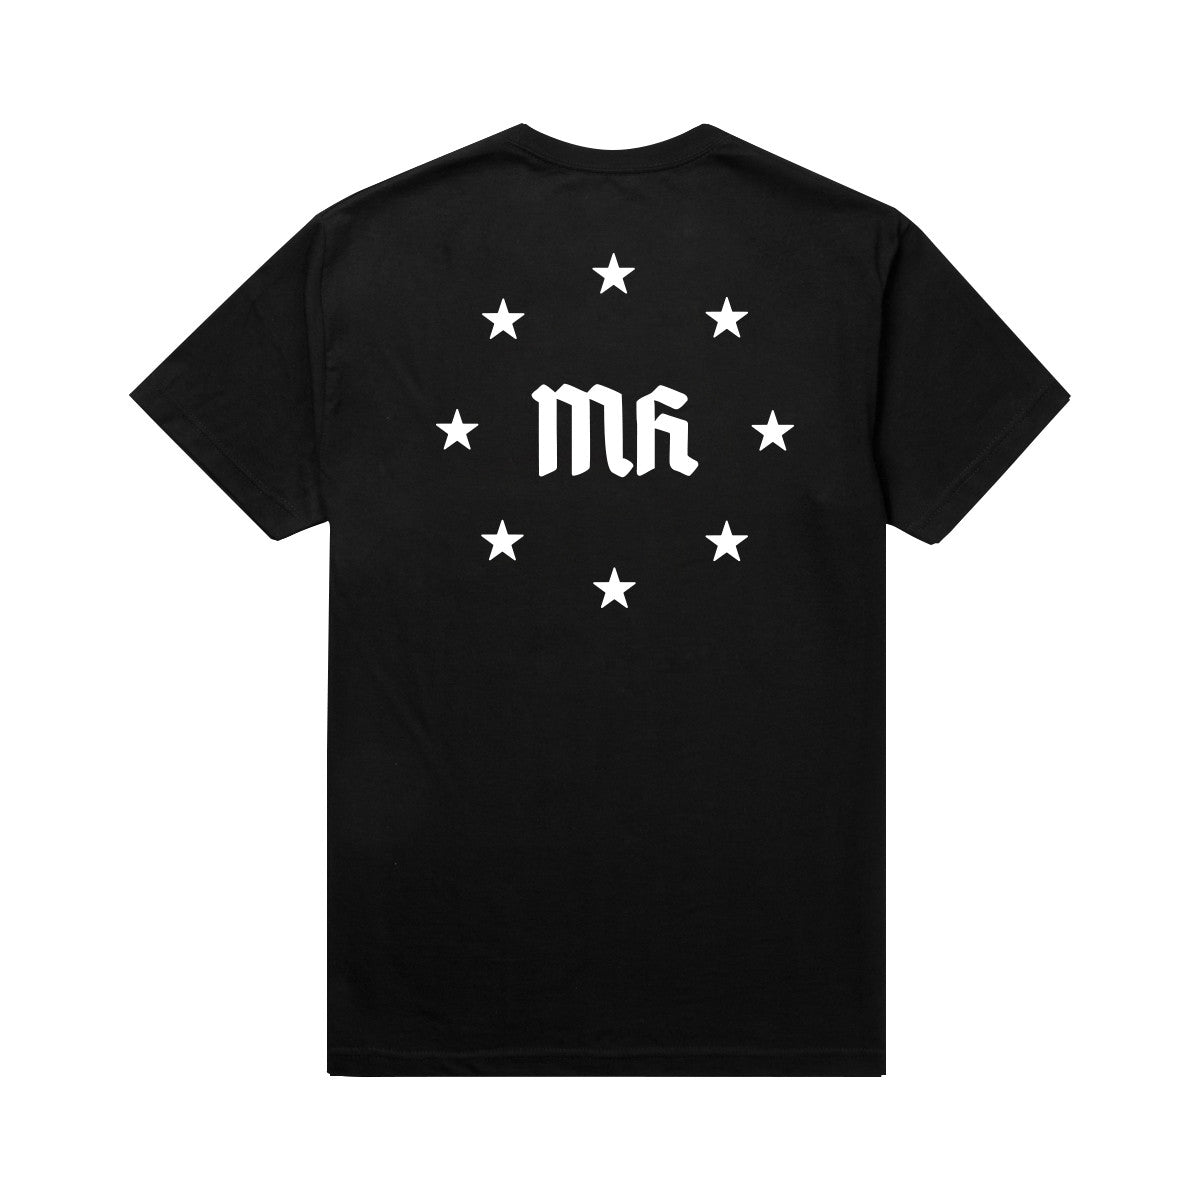 Most Hated Star Tee - Black